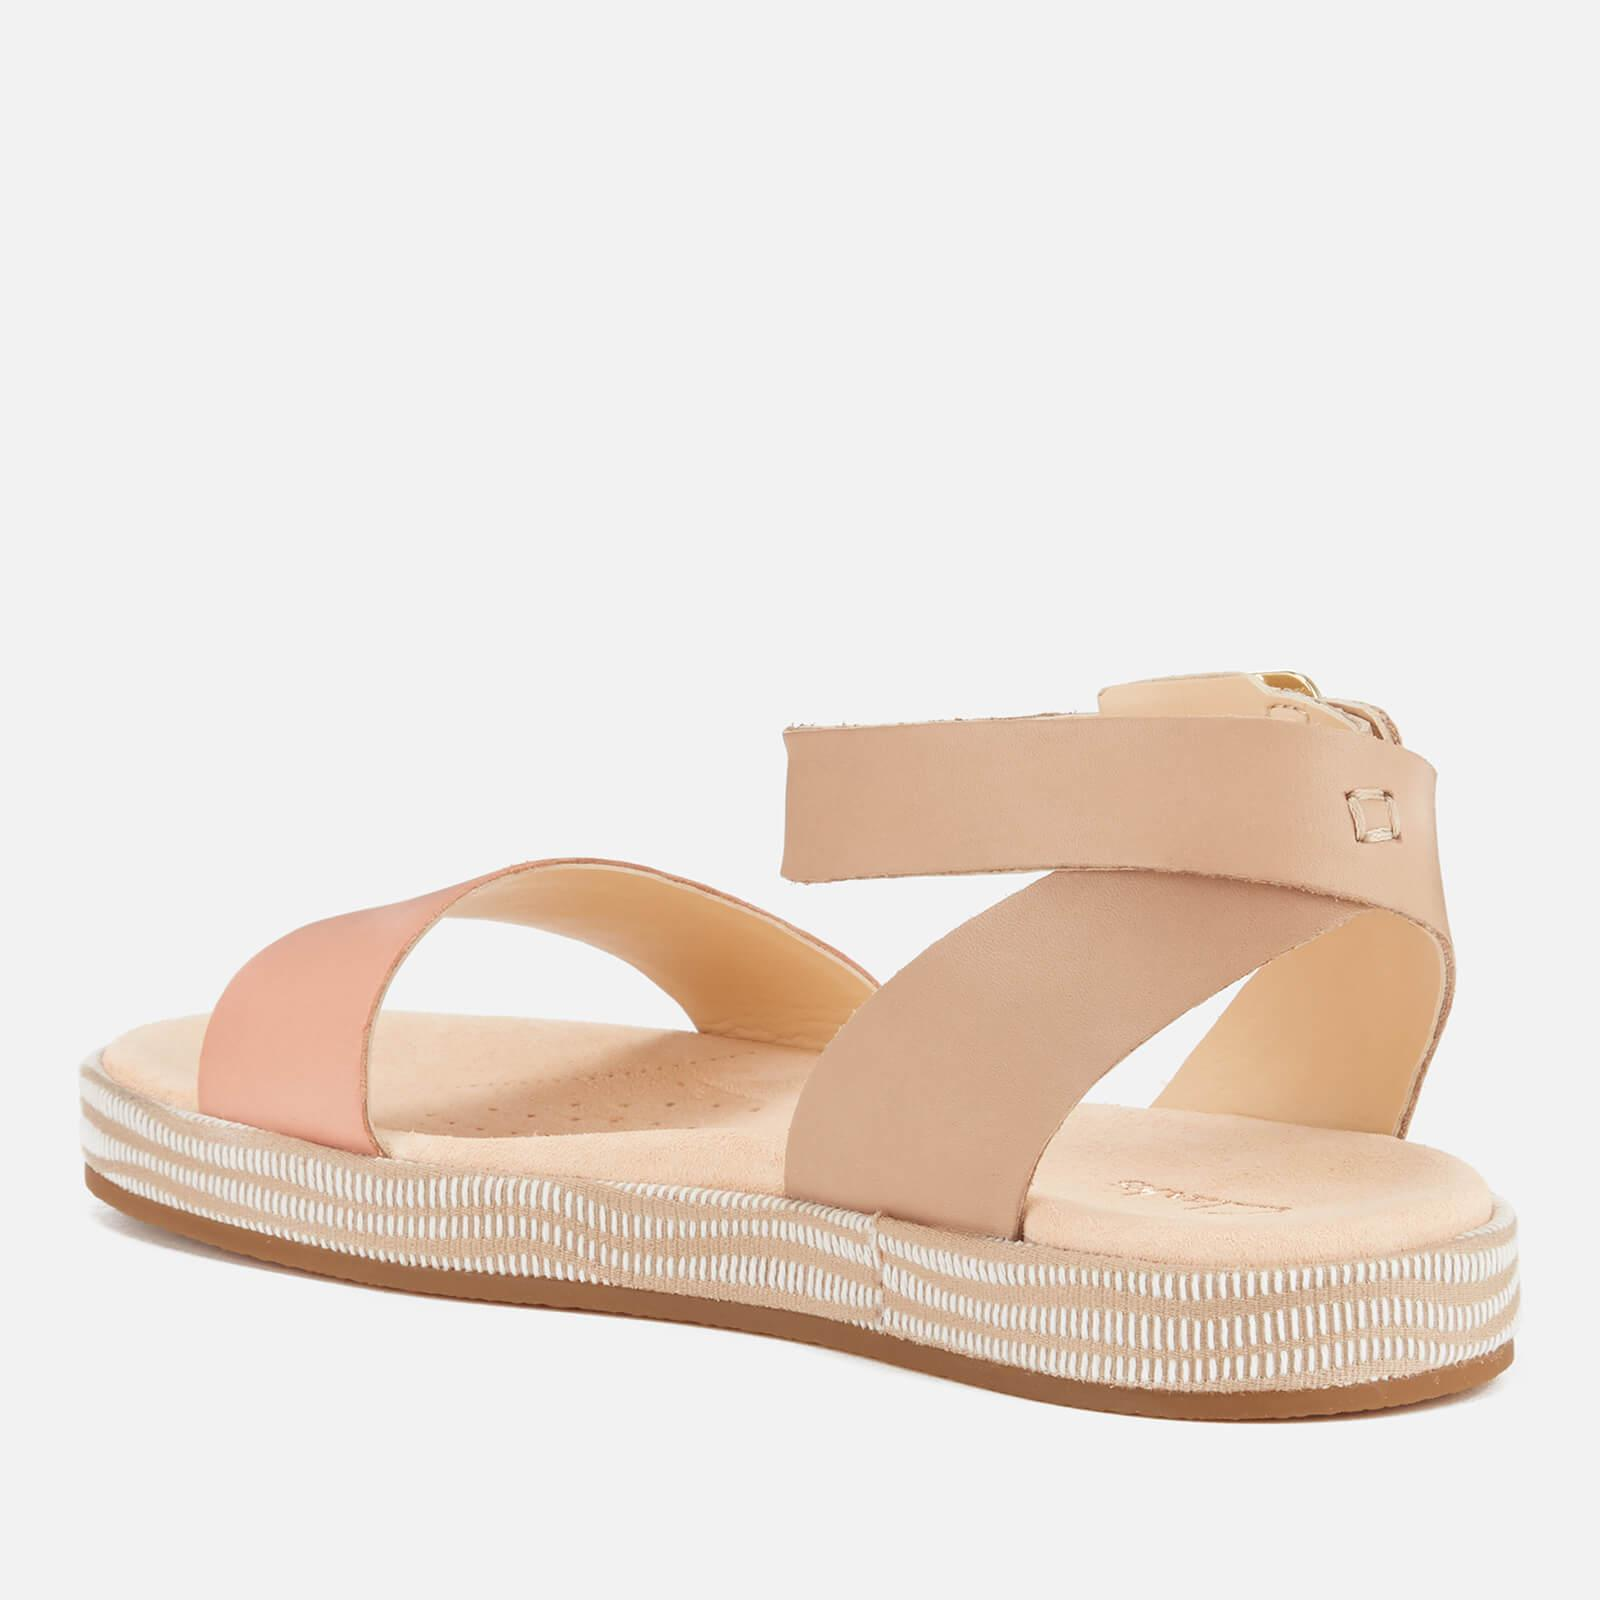 497d1a7ee04 Clarks Botanic Ivy Double Strap Flat Sandals in Pink - Lyst